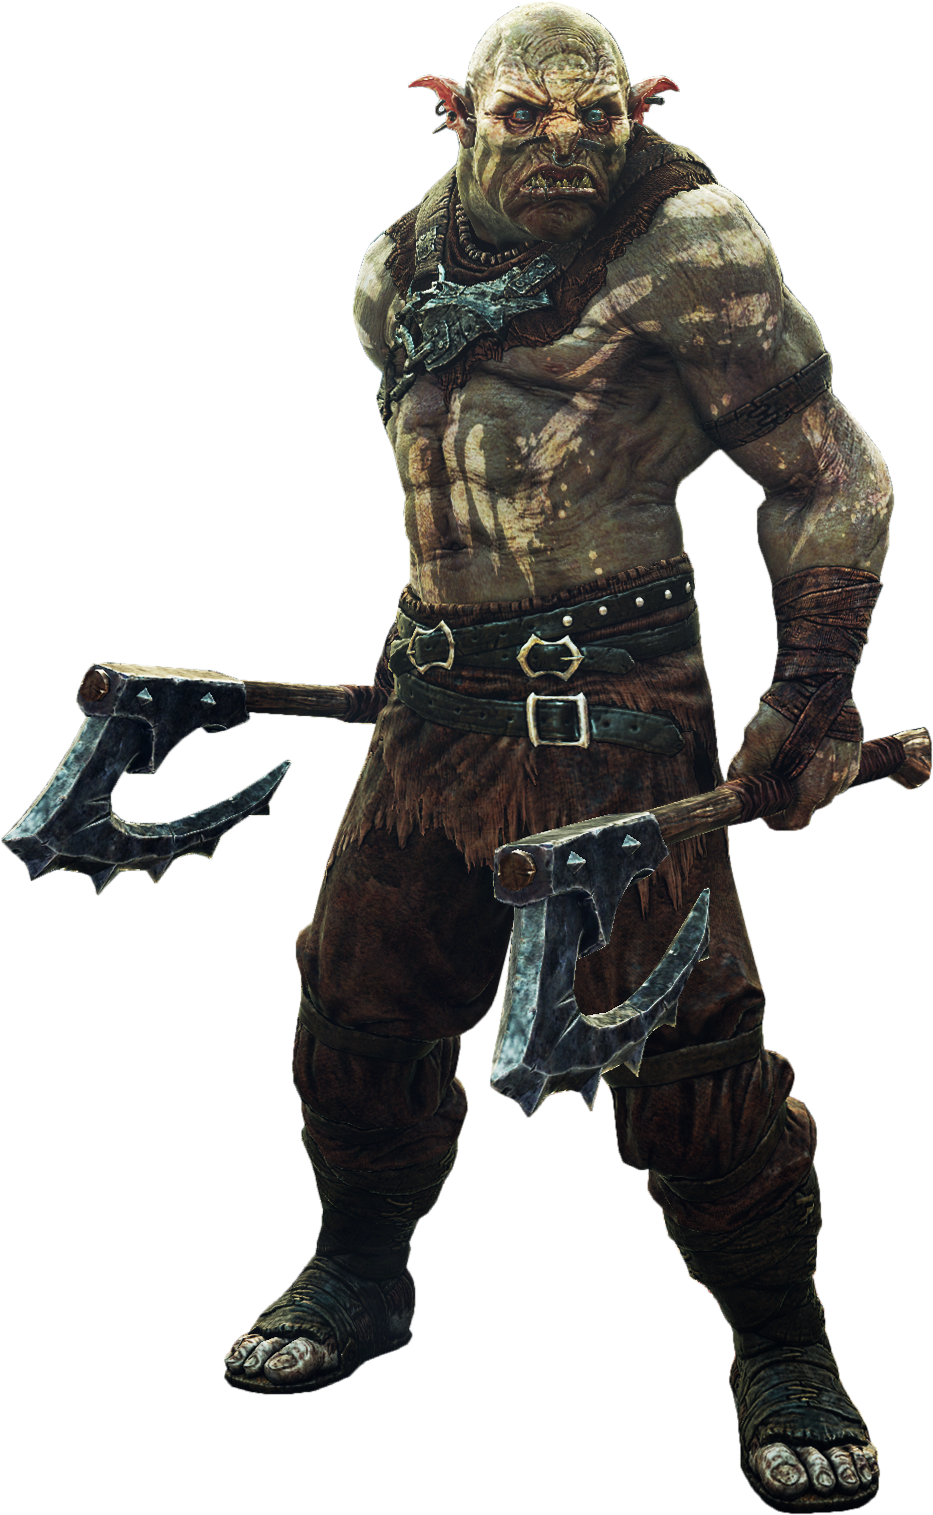 uploads orc orc PNG37 44